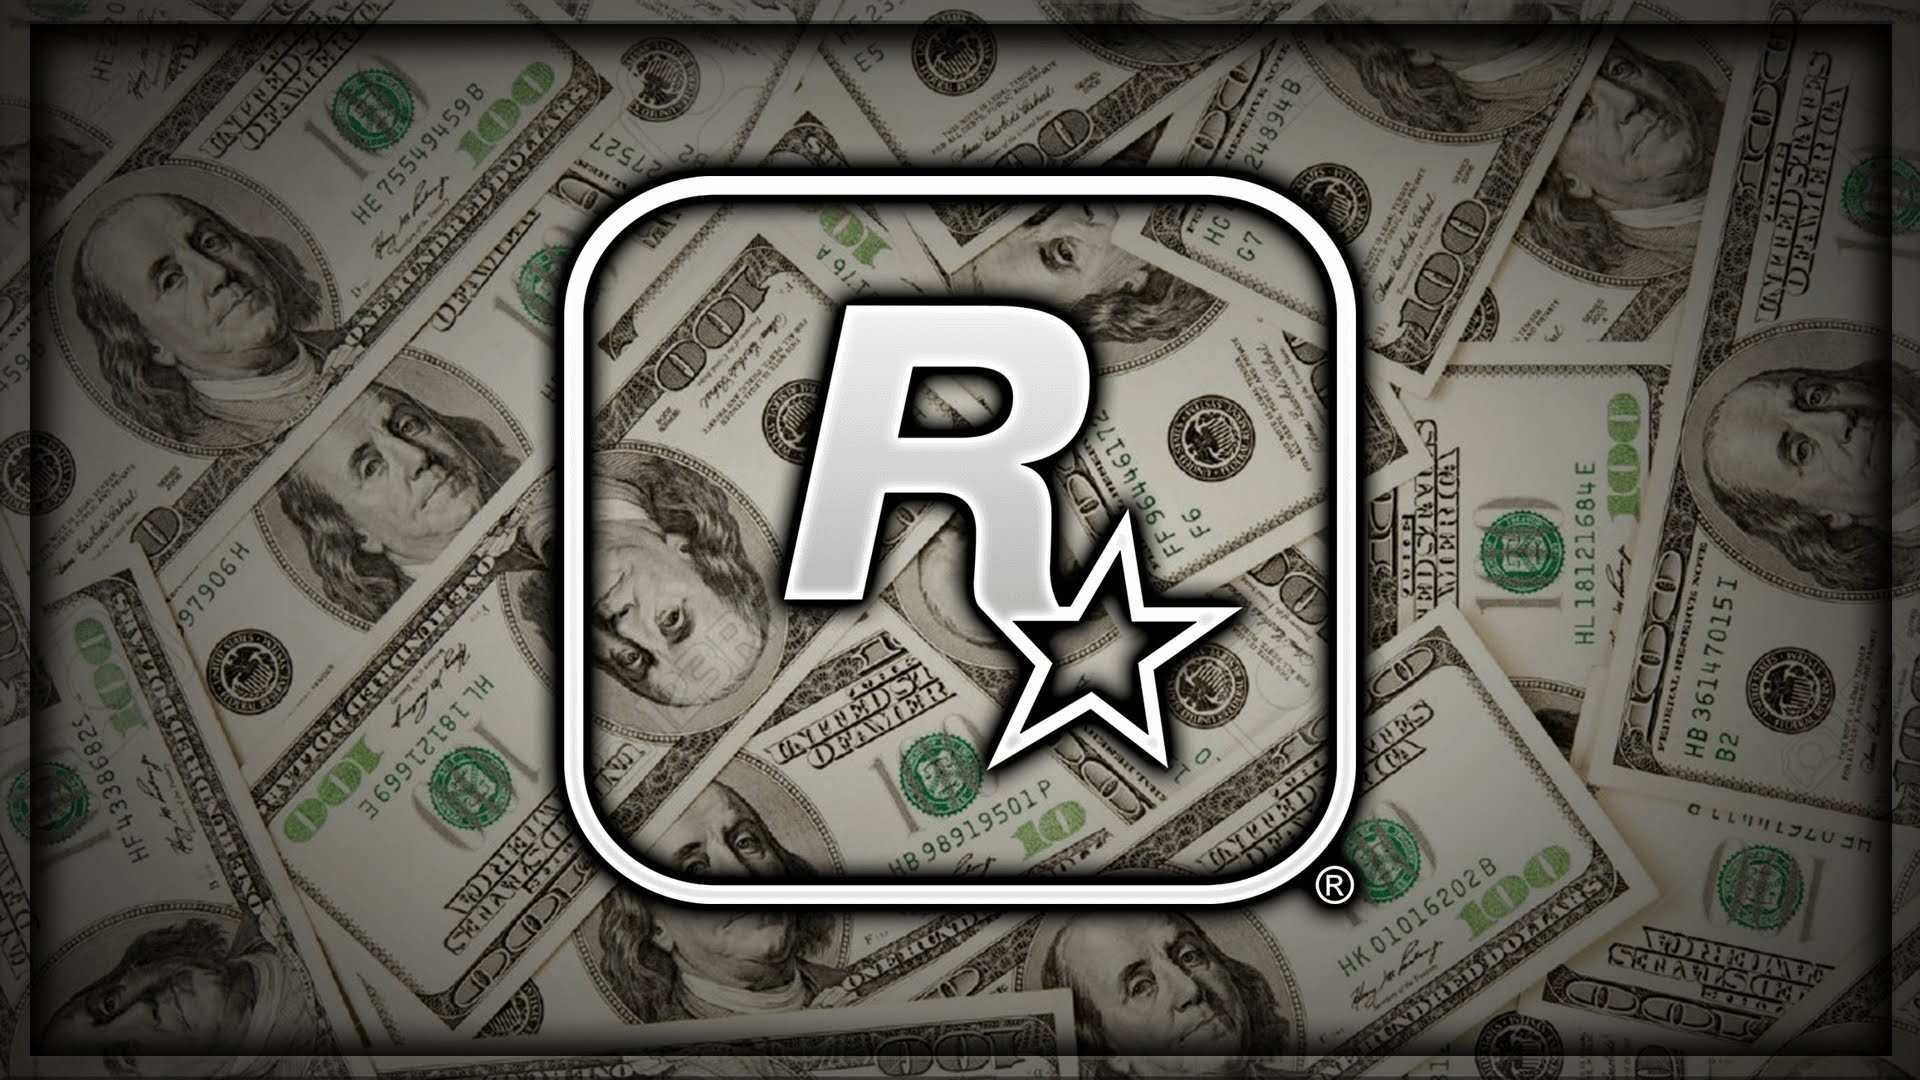 HOW TO RECEIVE MILLIONS FROM ROCKSTAR GAMES FOR FREE IN GTA 5 ONLINE